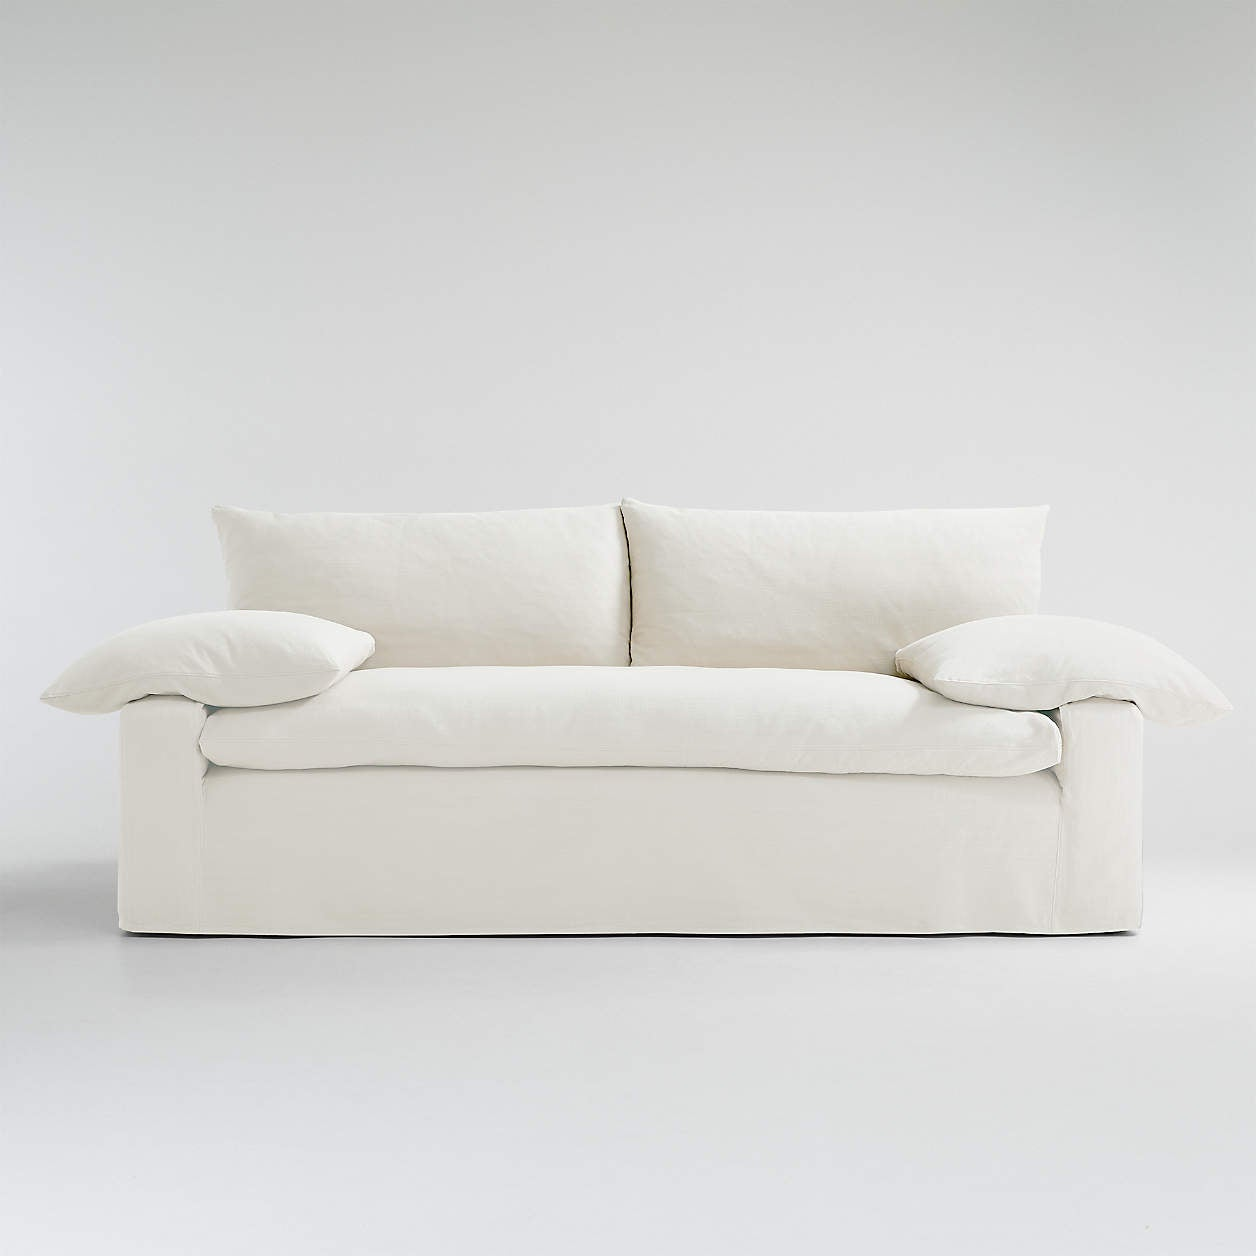 A Slipcovered <em>Bed</em> Is the Star of Leanne Ford's Fresh Crate & Barrel Collection